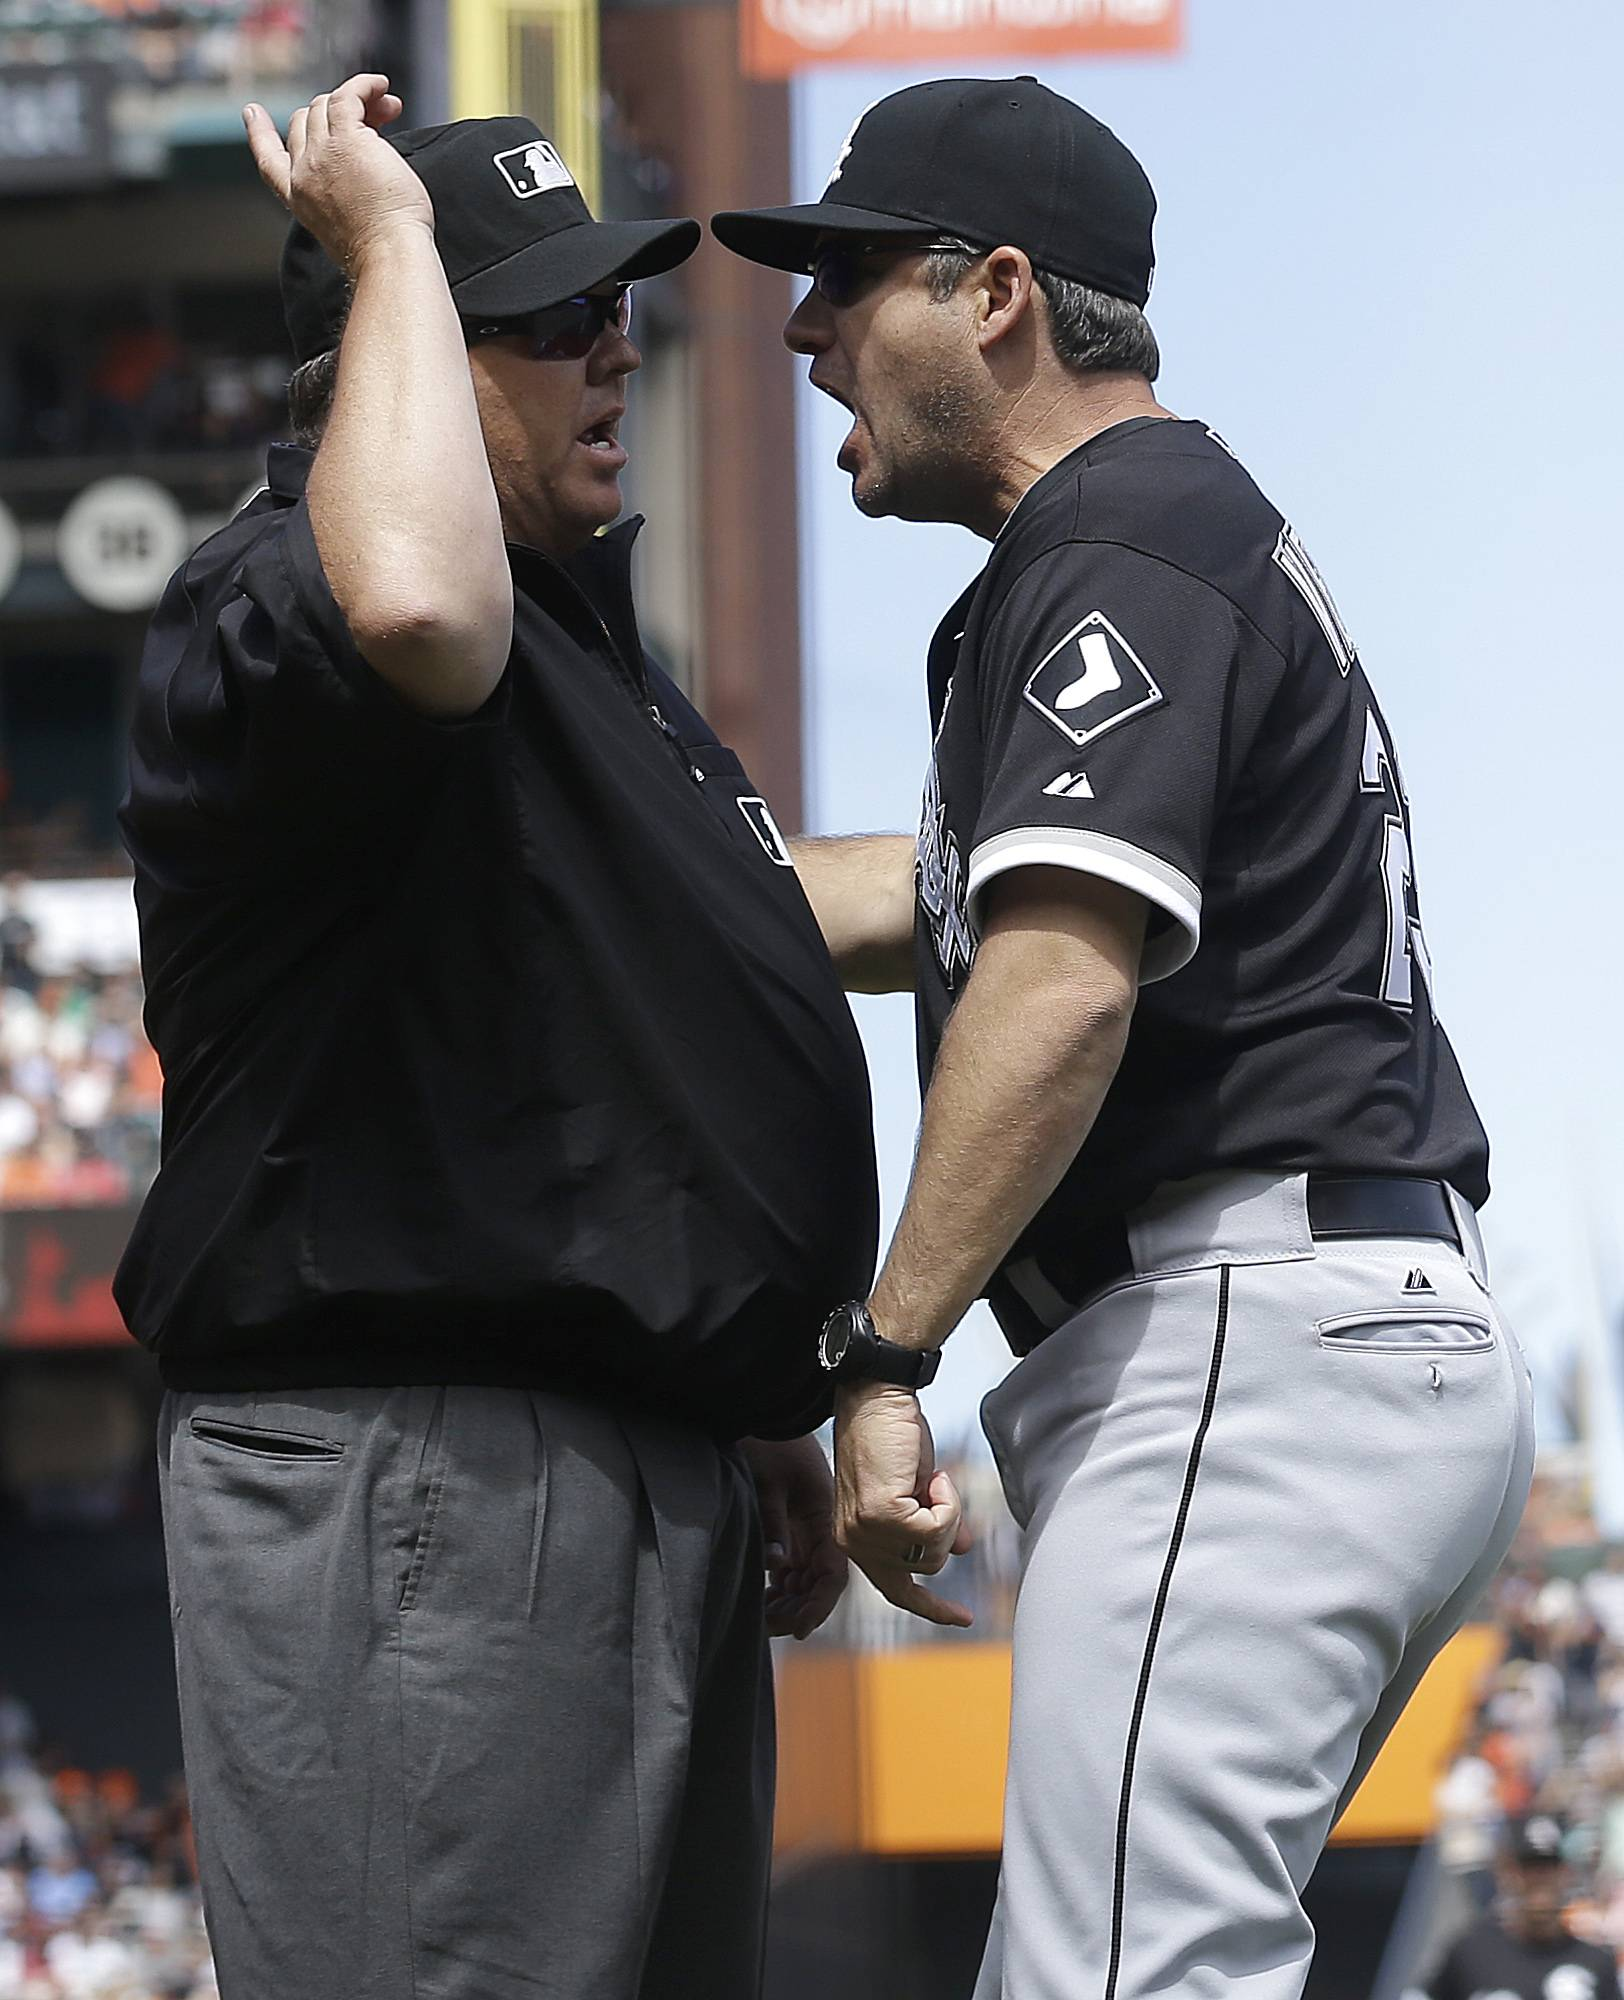 White Sox manager Robin Ventura is ejected by umpire Fieldin Culbreth for arguing a call on the Giants' Gregor Blanco last week. Blanco originally was ruled out at home but then ruled safe after review.